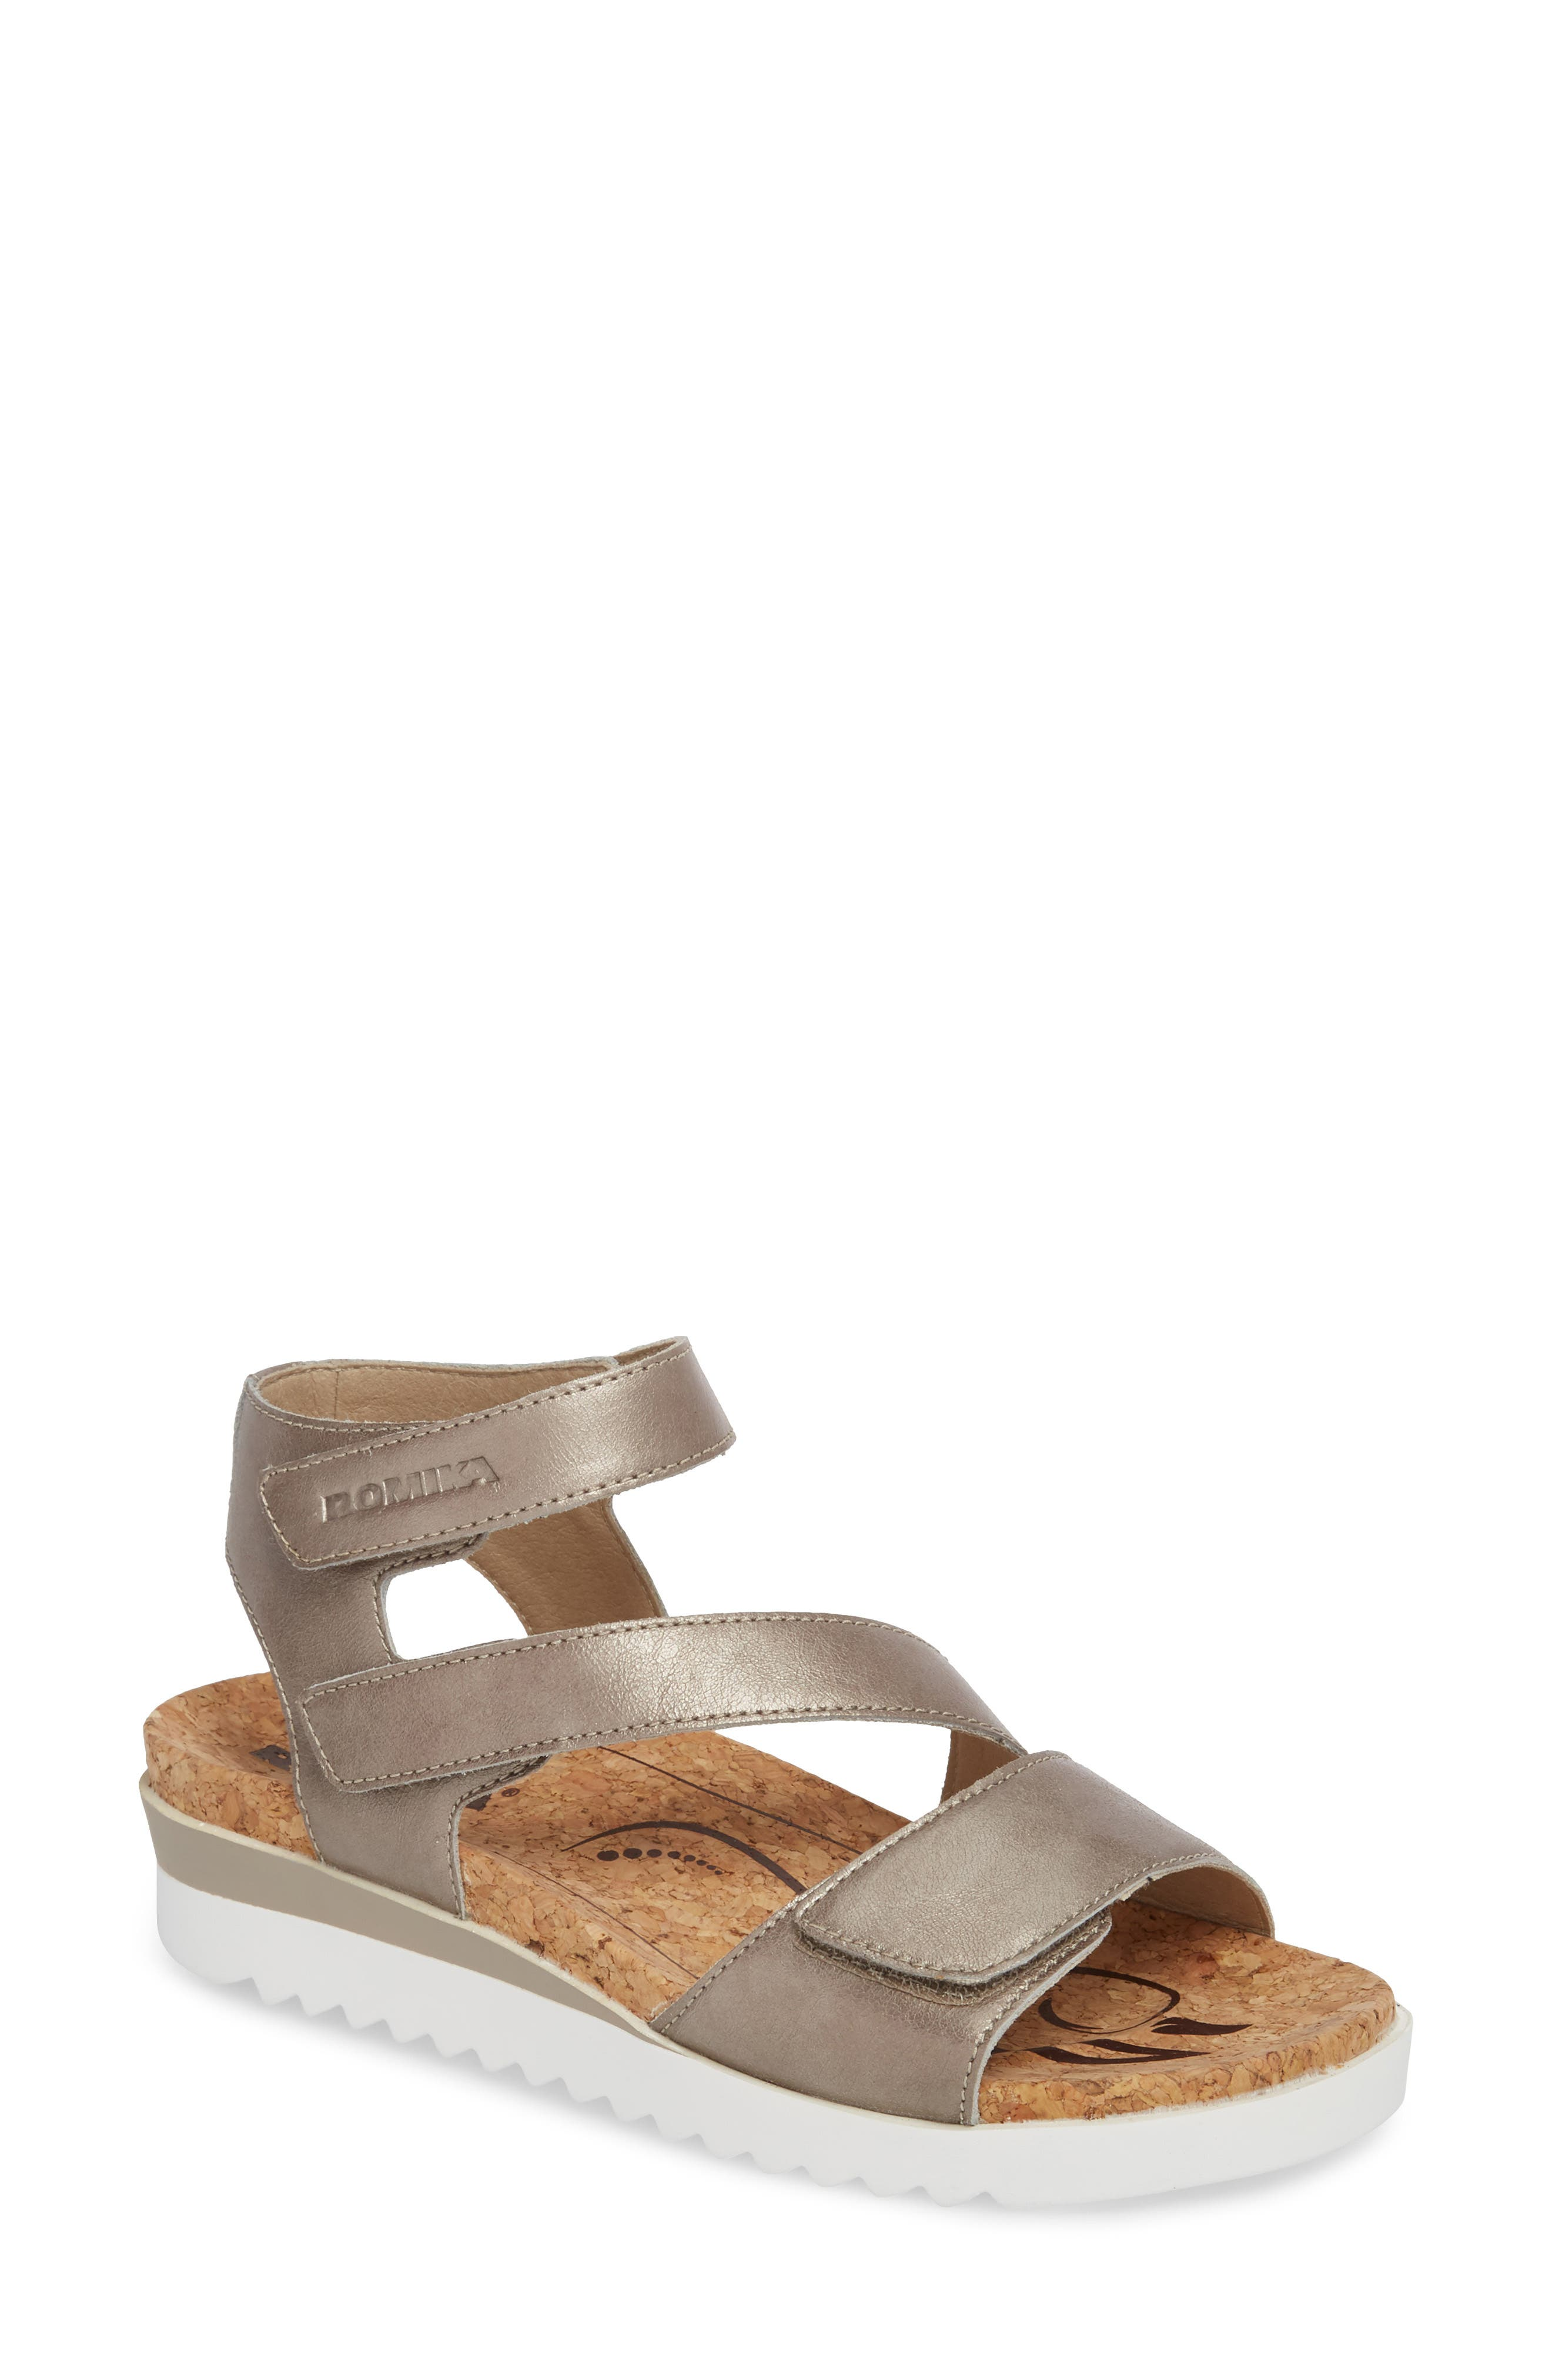 Latest Romika Hollywood Sandals Platin For Women Clearance